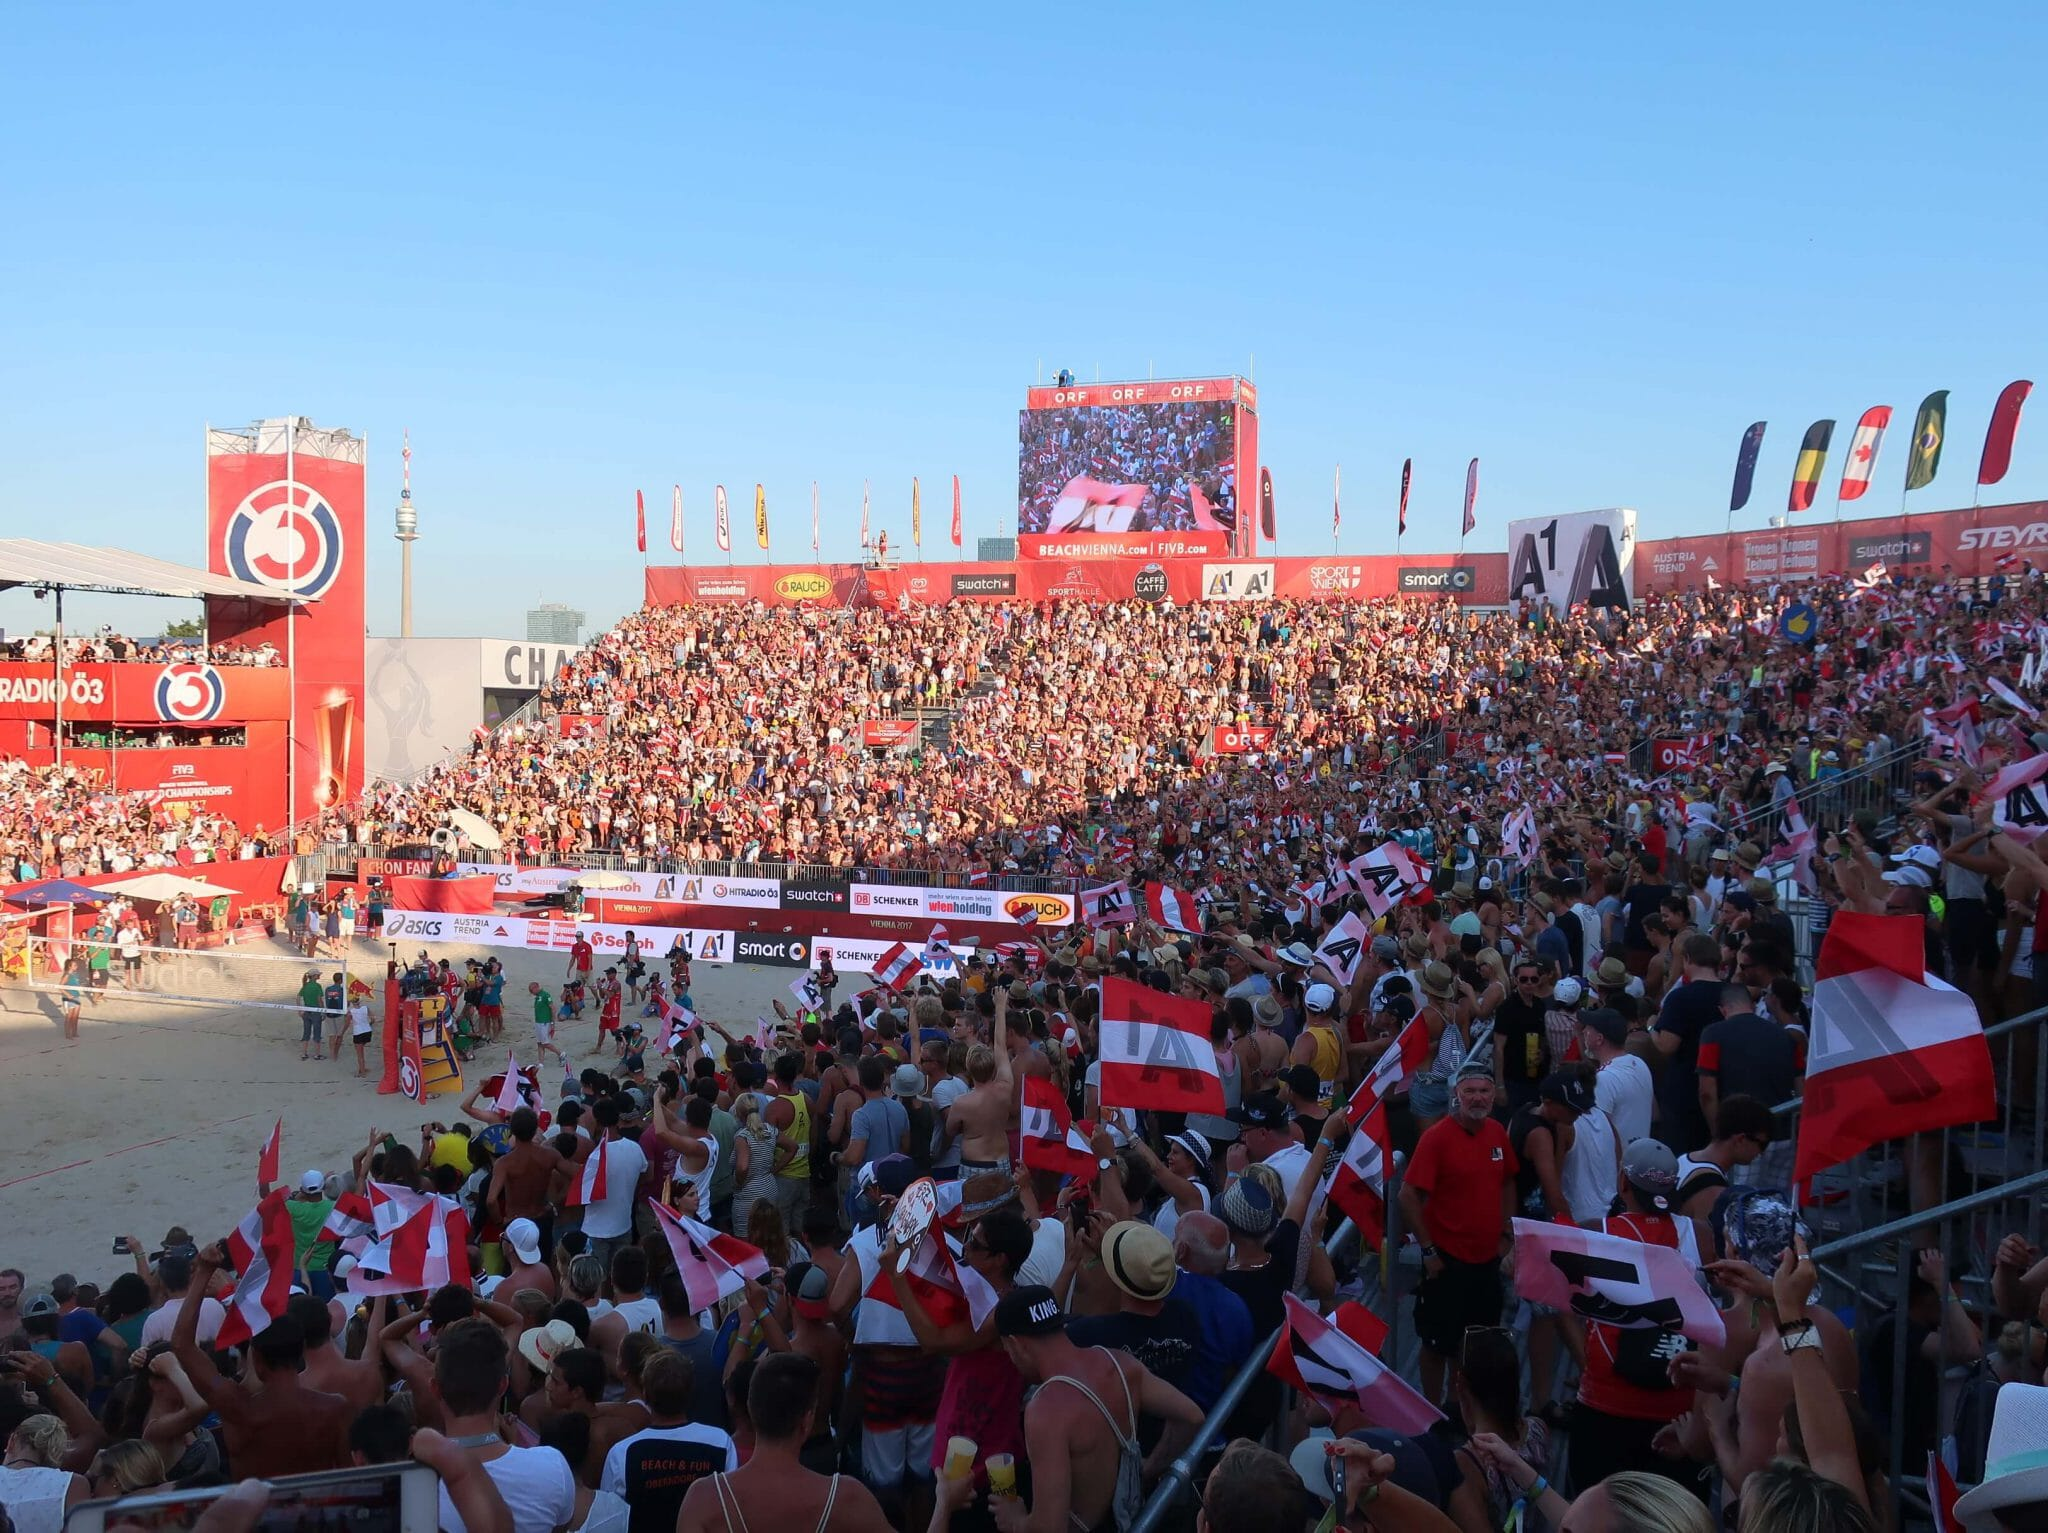 Crowd at FIVB beach volleyball world championships